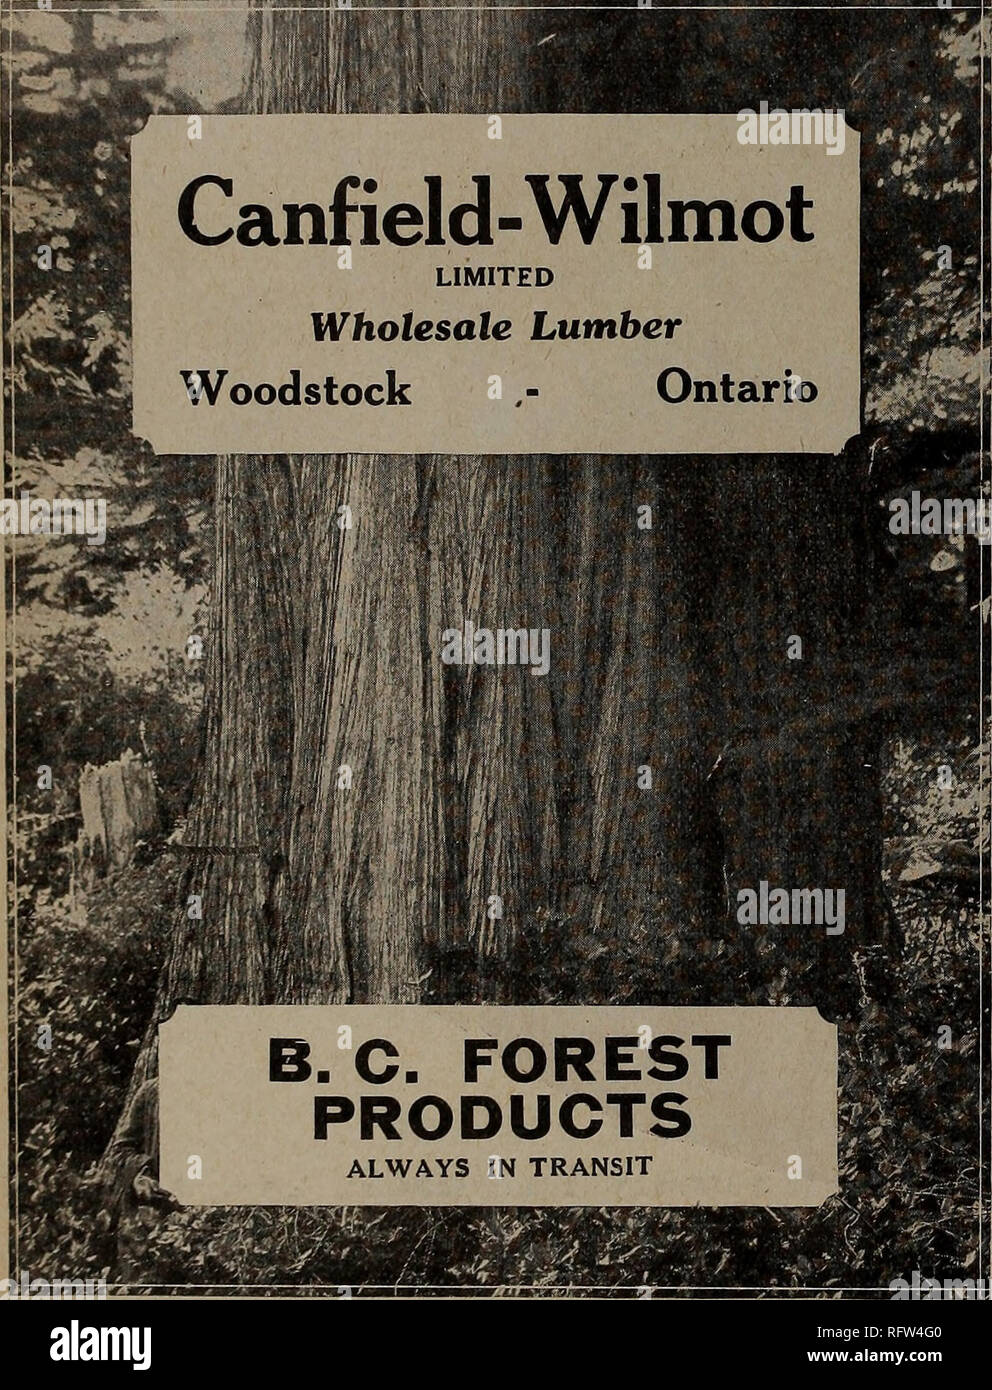 . Canadian forest industries July-December 1923. Lumbering; Forests and forestry; Forest products; Wood-pulp industry; Wood-using industries. CANADA LUMBERMAN International Land & Lumber Company Limited LUMBER AND RAILWAY TIES Limit, and Milk : ST. FELICIEN, LAKE ST. JOHN DISTRICT, QUEBEC. LOOK! All sizes No. 1 Hemlock, Dry Jack Pine Flooring & etc. ARTHUR N. DUDLEY Manufacturer and Wholesaler 108-109 Stair Building, TORONTO, ONT. TELEPHONE MAIN 6368 GET THE BEST IT WILL PAY YOU OLIVER White Pine and Hard- woods add a zip to sales and send your prestige stock soaring. Get quotations to - Stock Image